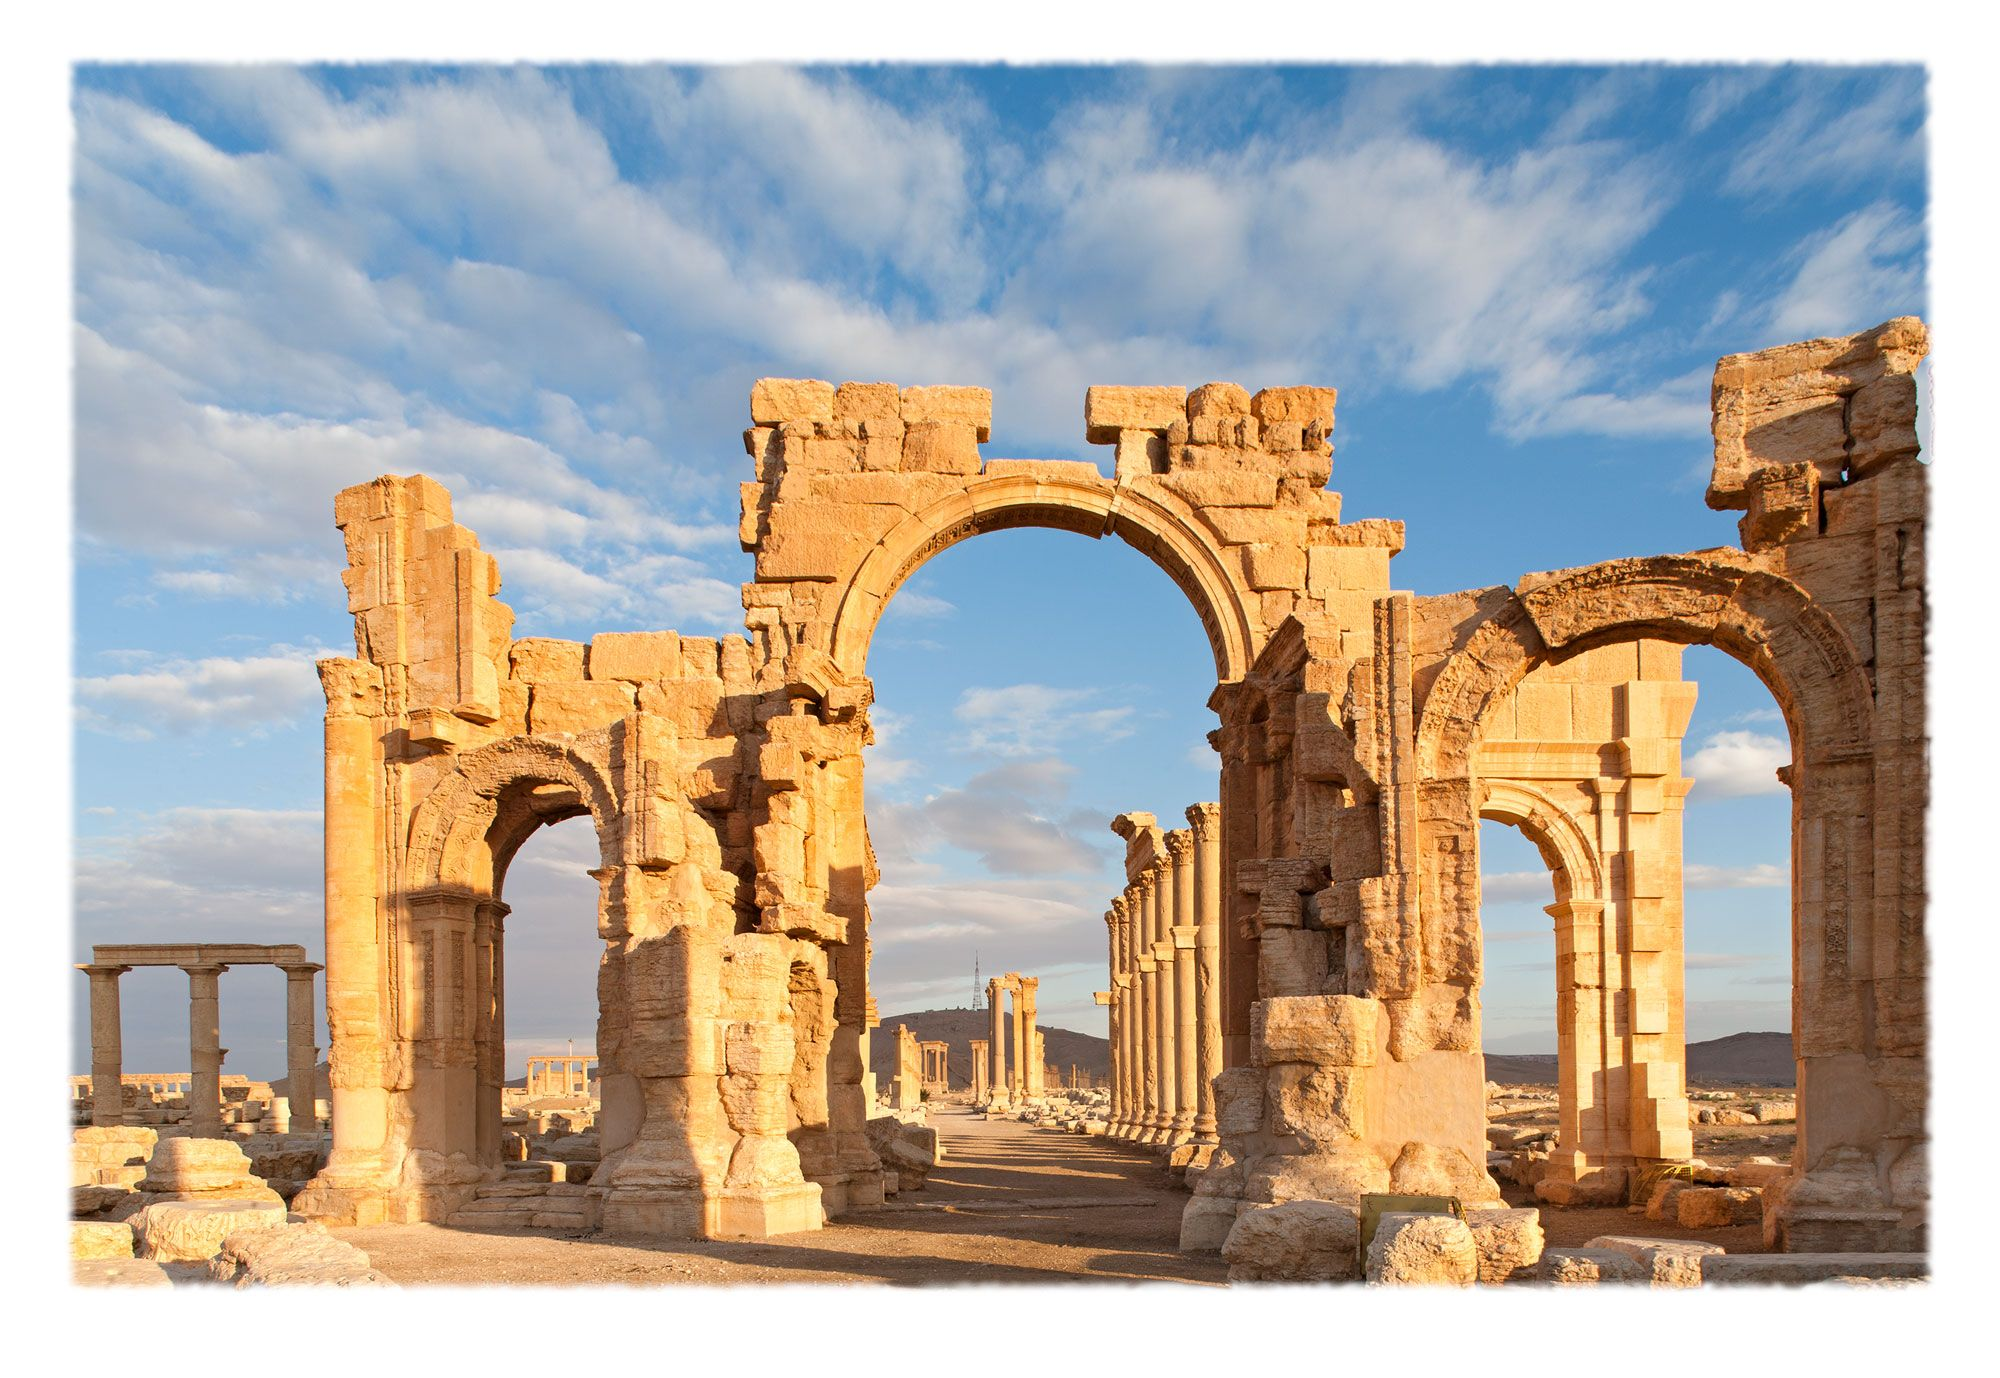 Qaws al-Nasr (in Arabic), a monumental arched entrance to the main colonnaded thoroughfare of ancient Palmyra. Built during the reign of emperor Septimius Severus [193 to 211 CE], it commemorated a Roman victory over the Parthians. It was exploded with dynamite in October 2015 by Daesh.